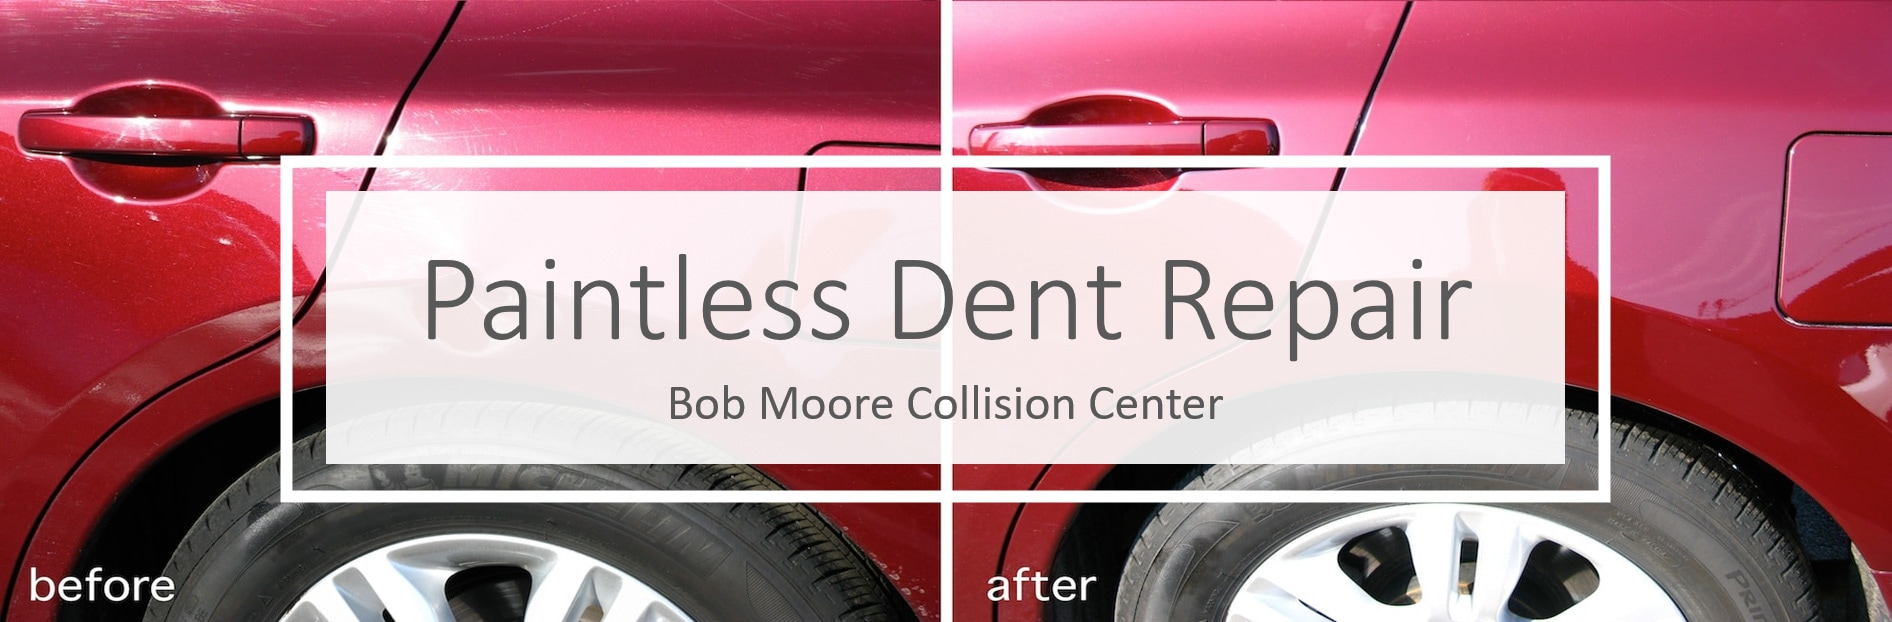 Paintless Dent Repair in Oklahoma City